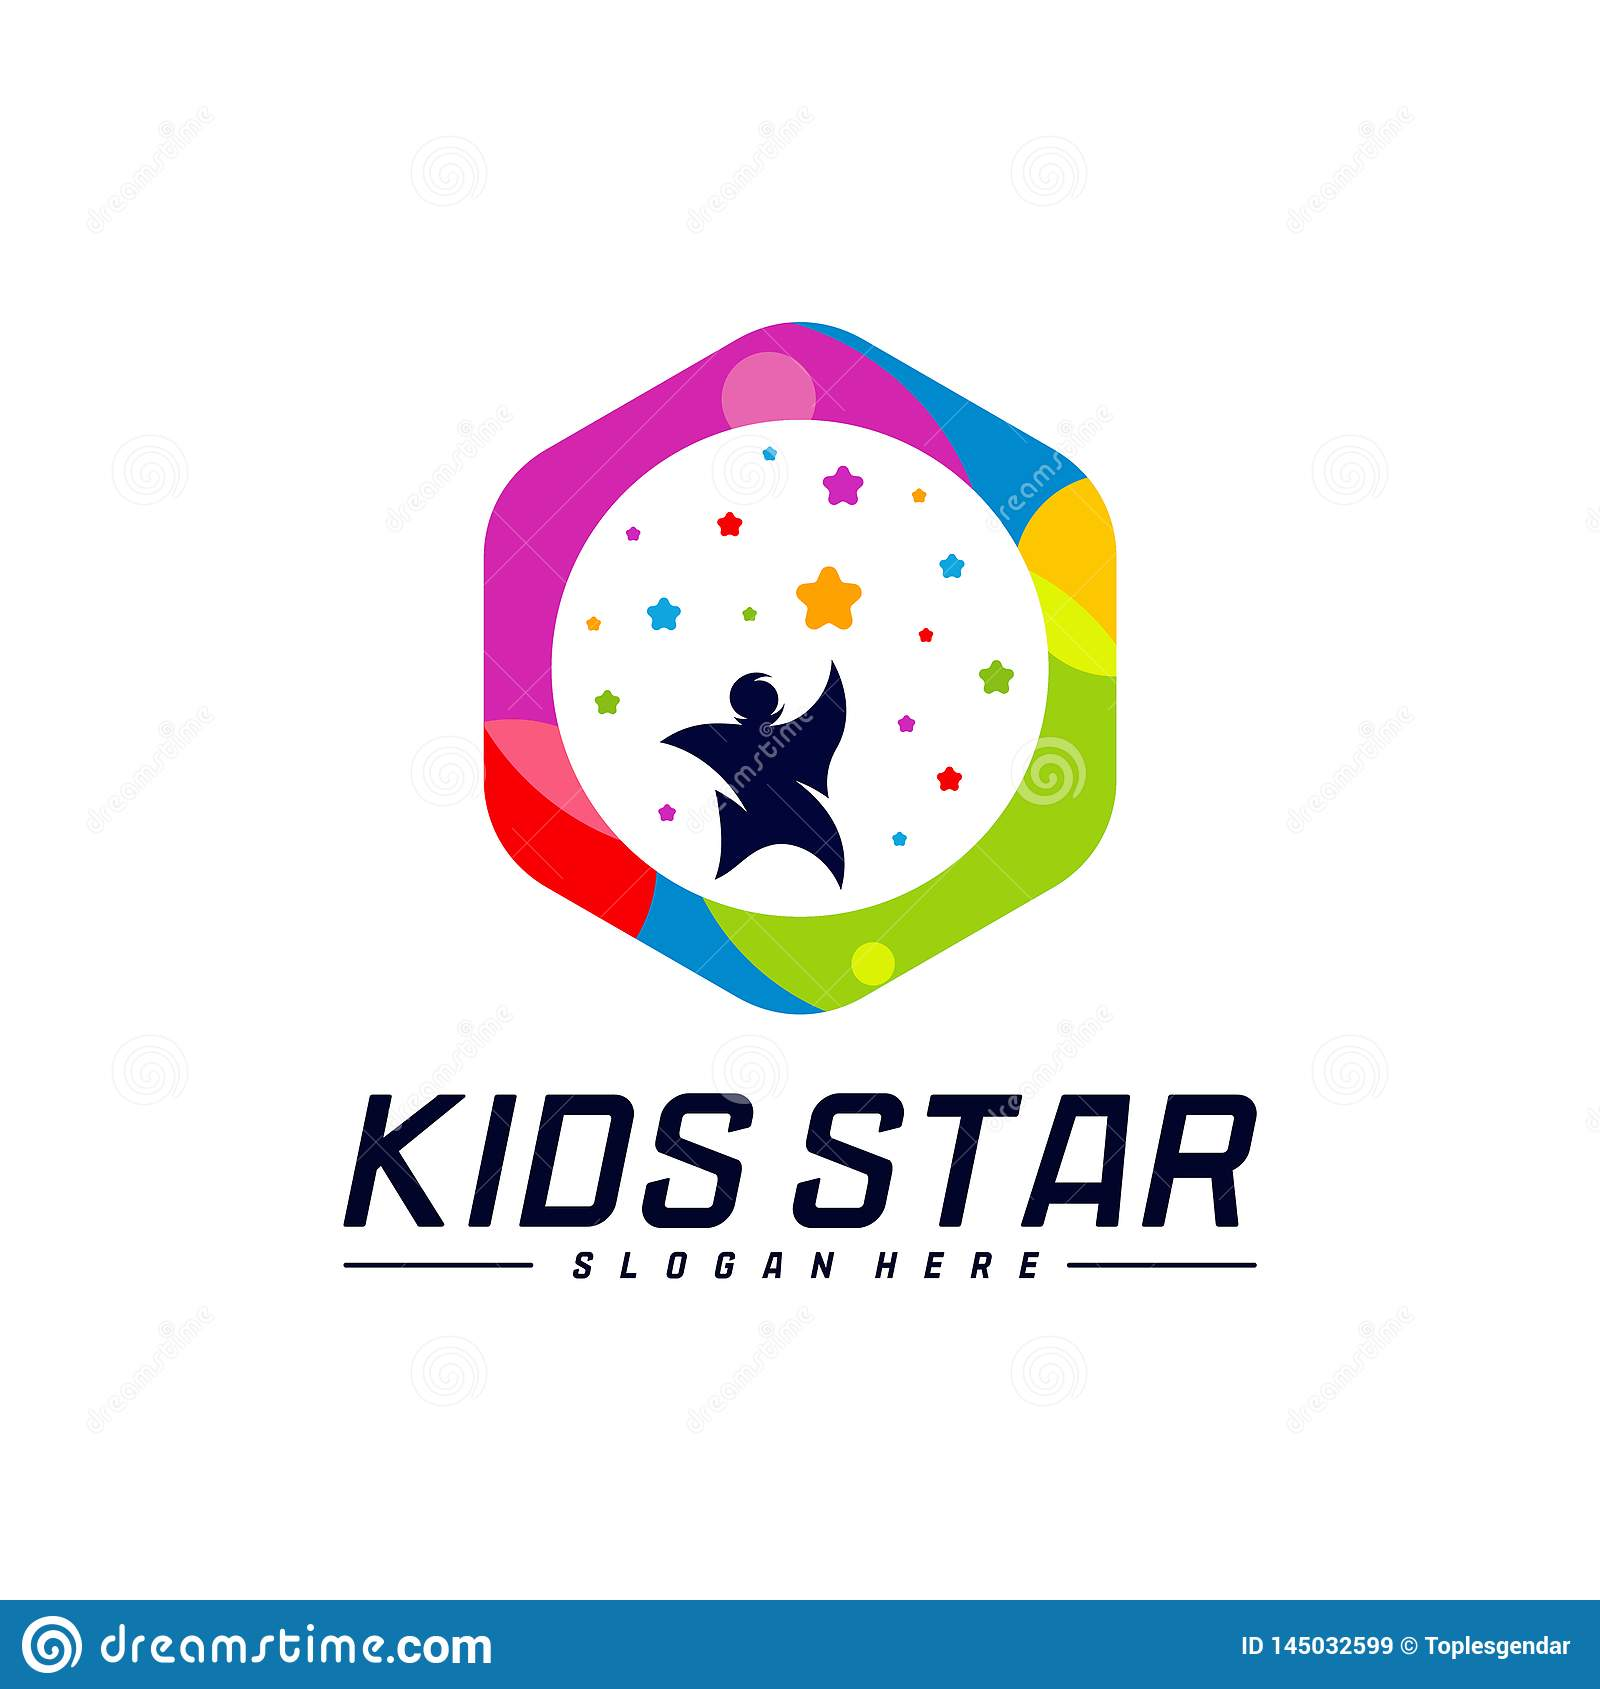 Reaching Stars Logo Design Template. Dream star logo. Kids Star Concept, Colorful, Creative Symbol